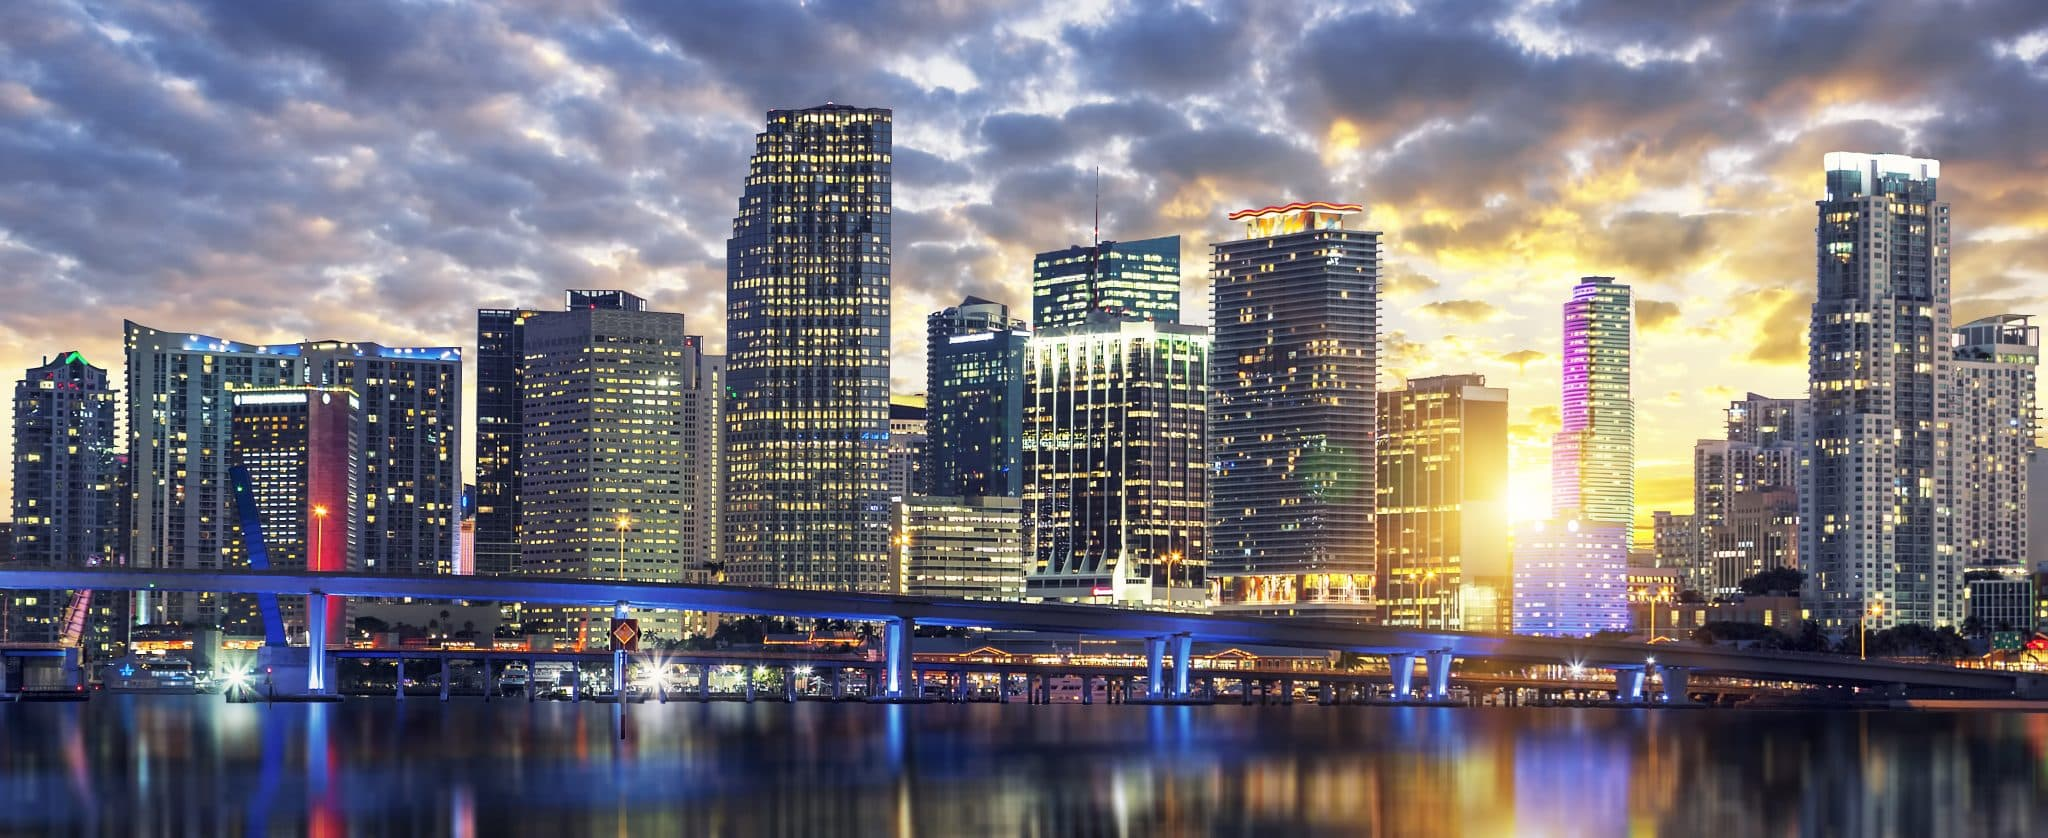 Top 5 Things to Do in Brickell